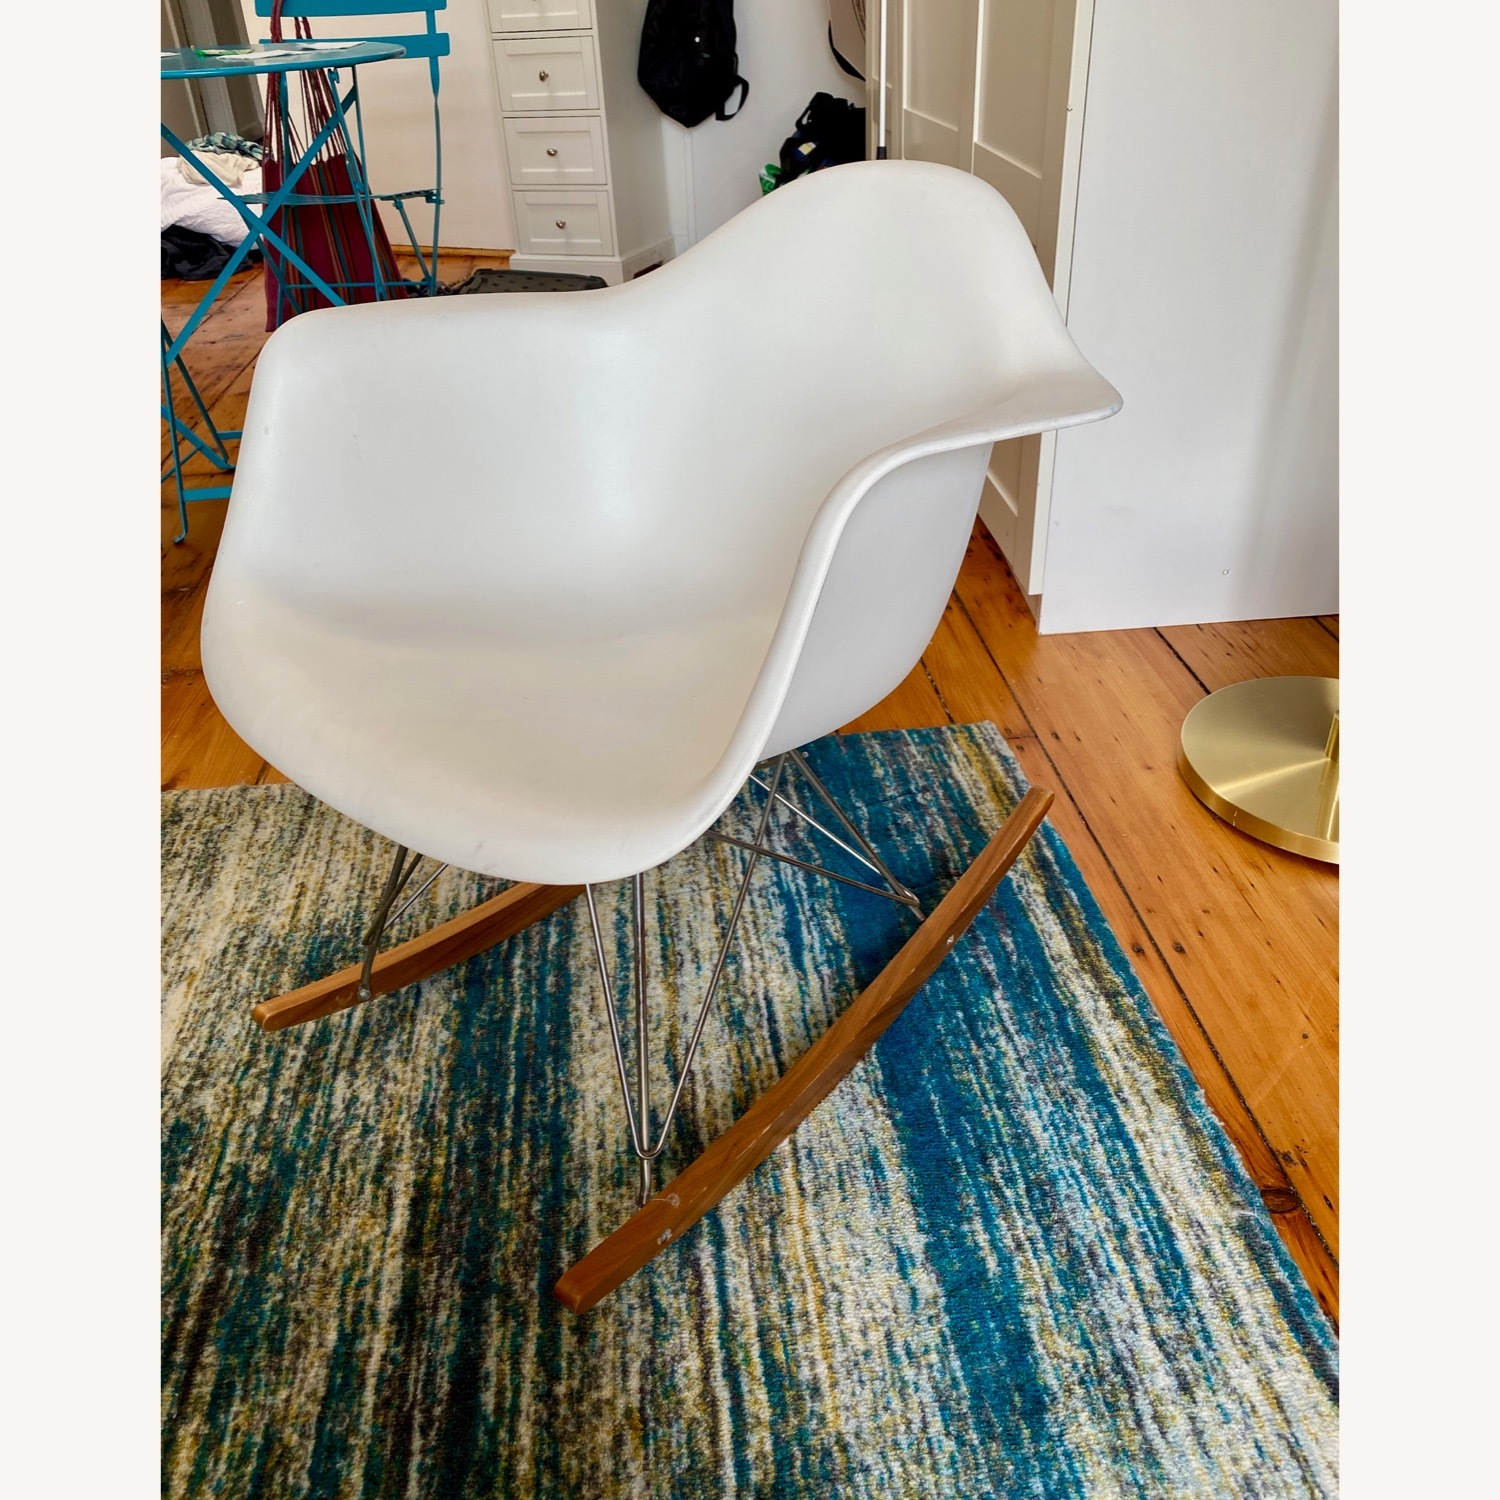 Eames Molded Plastic Armchair, Rocker Base - image-4